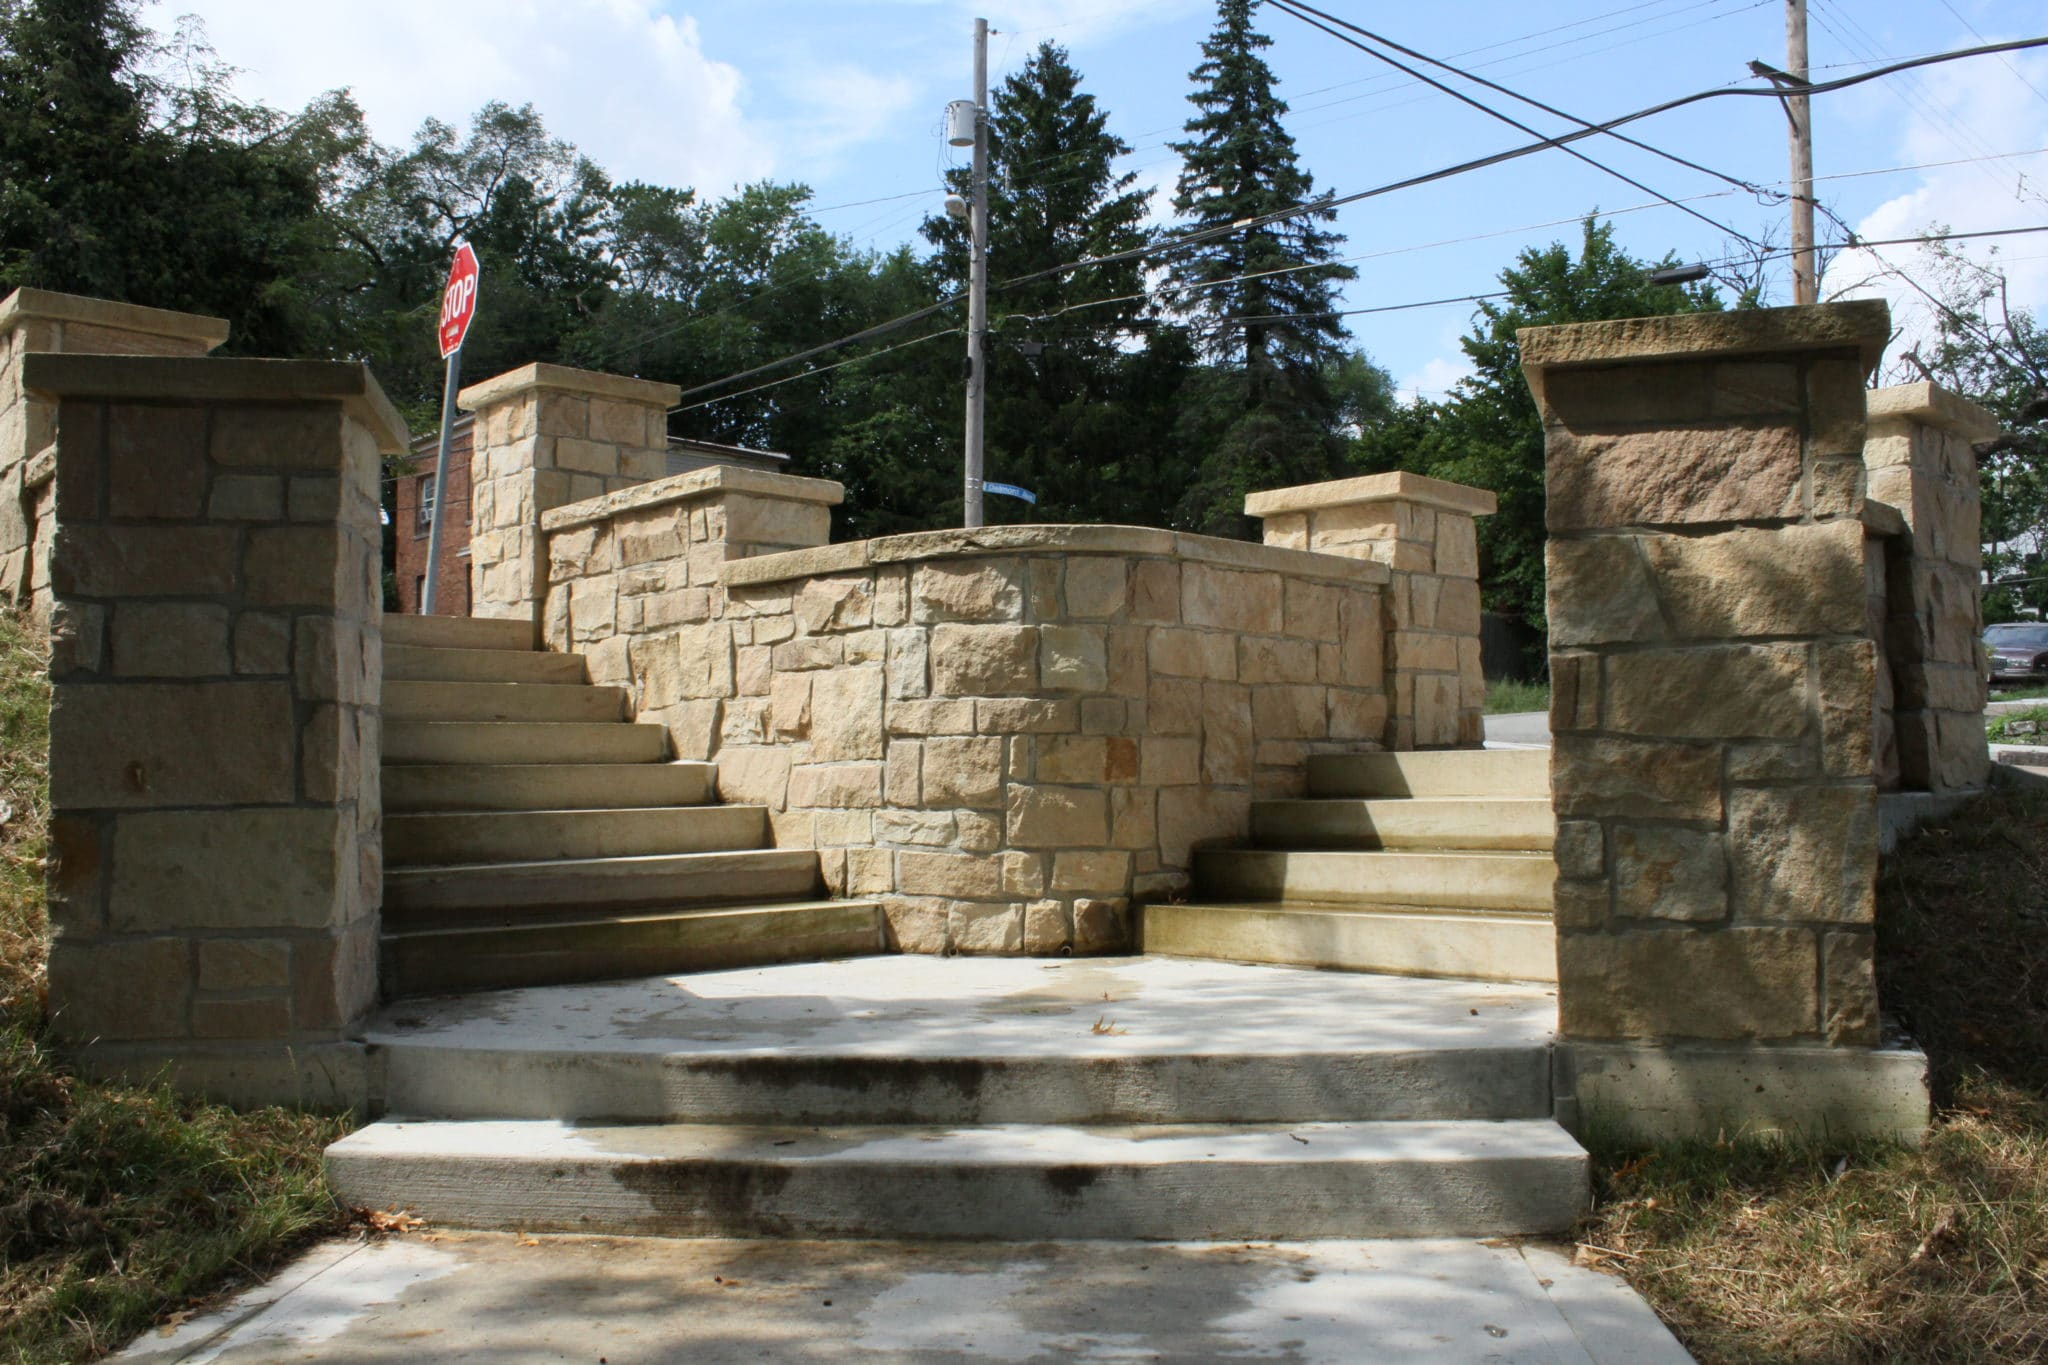 Concrete steps and stones at McKinley Park